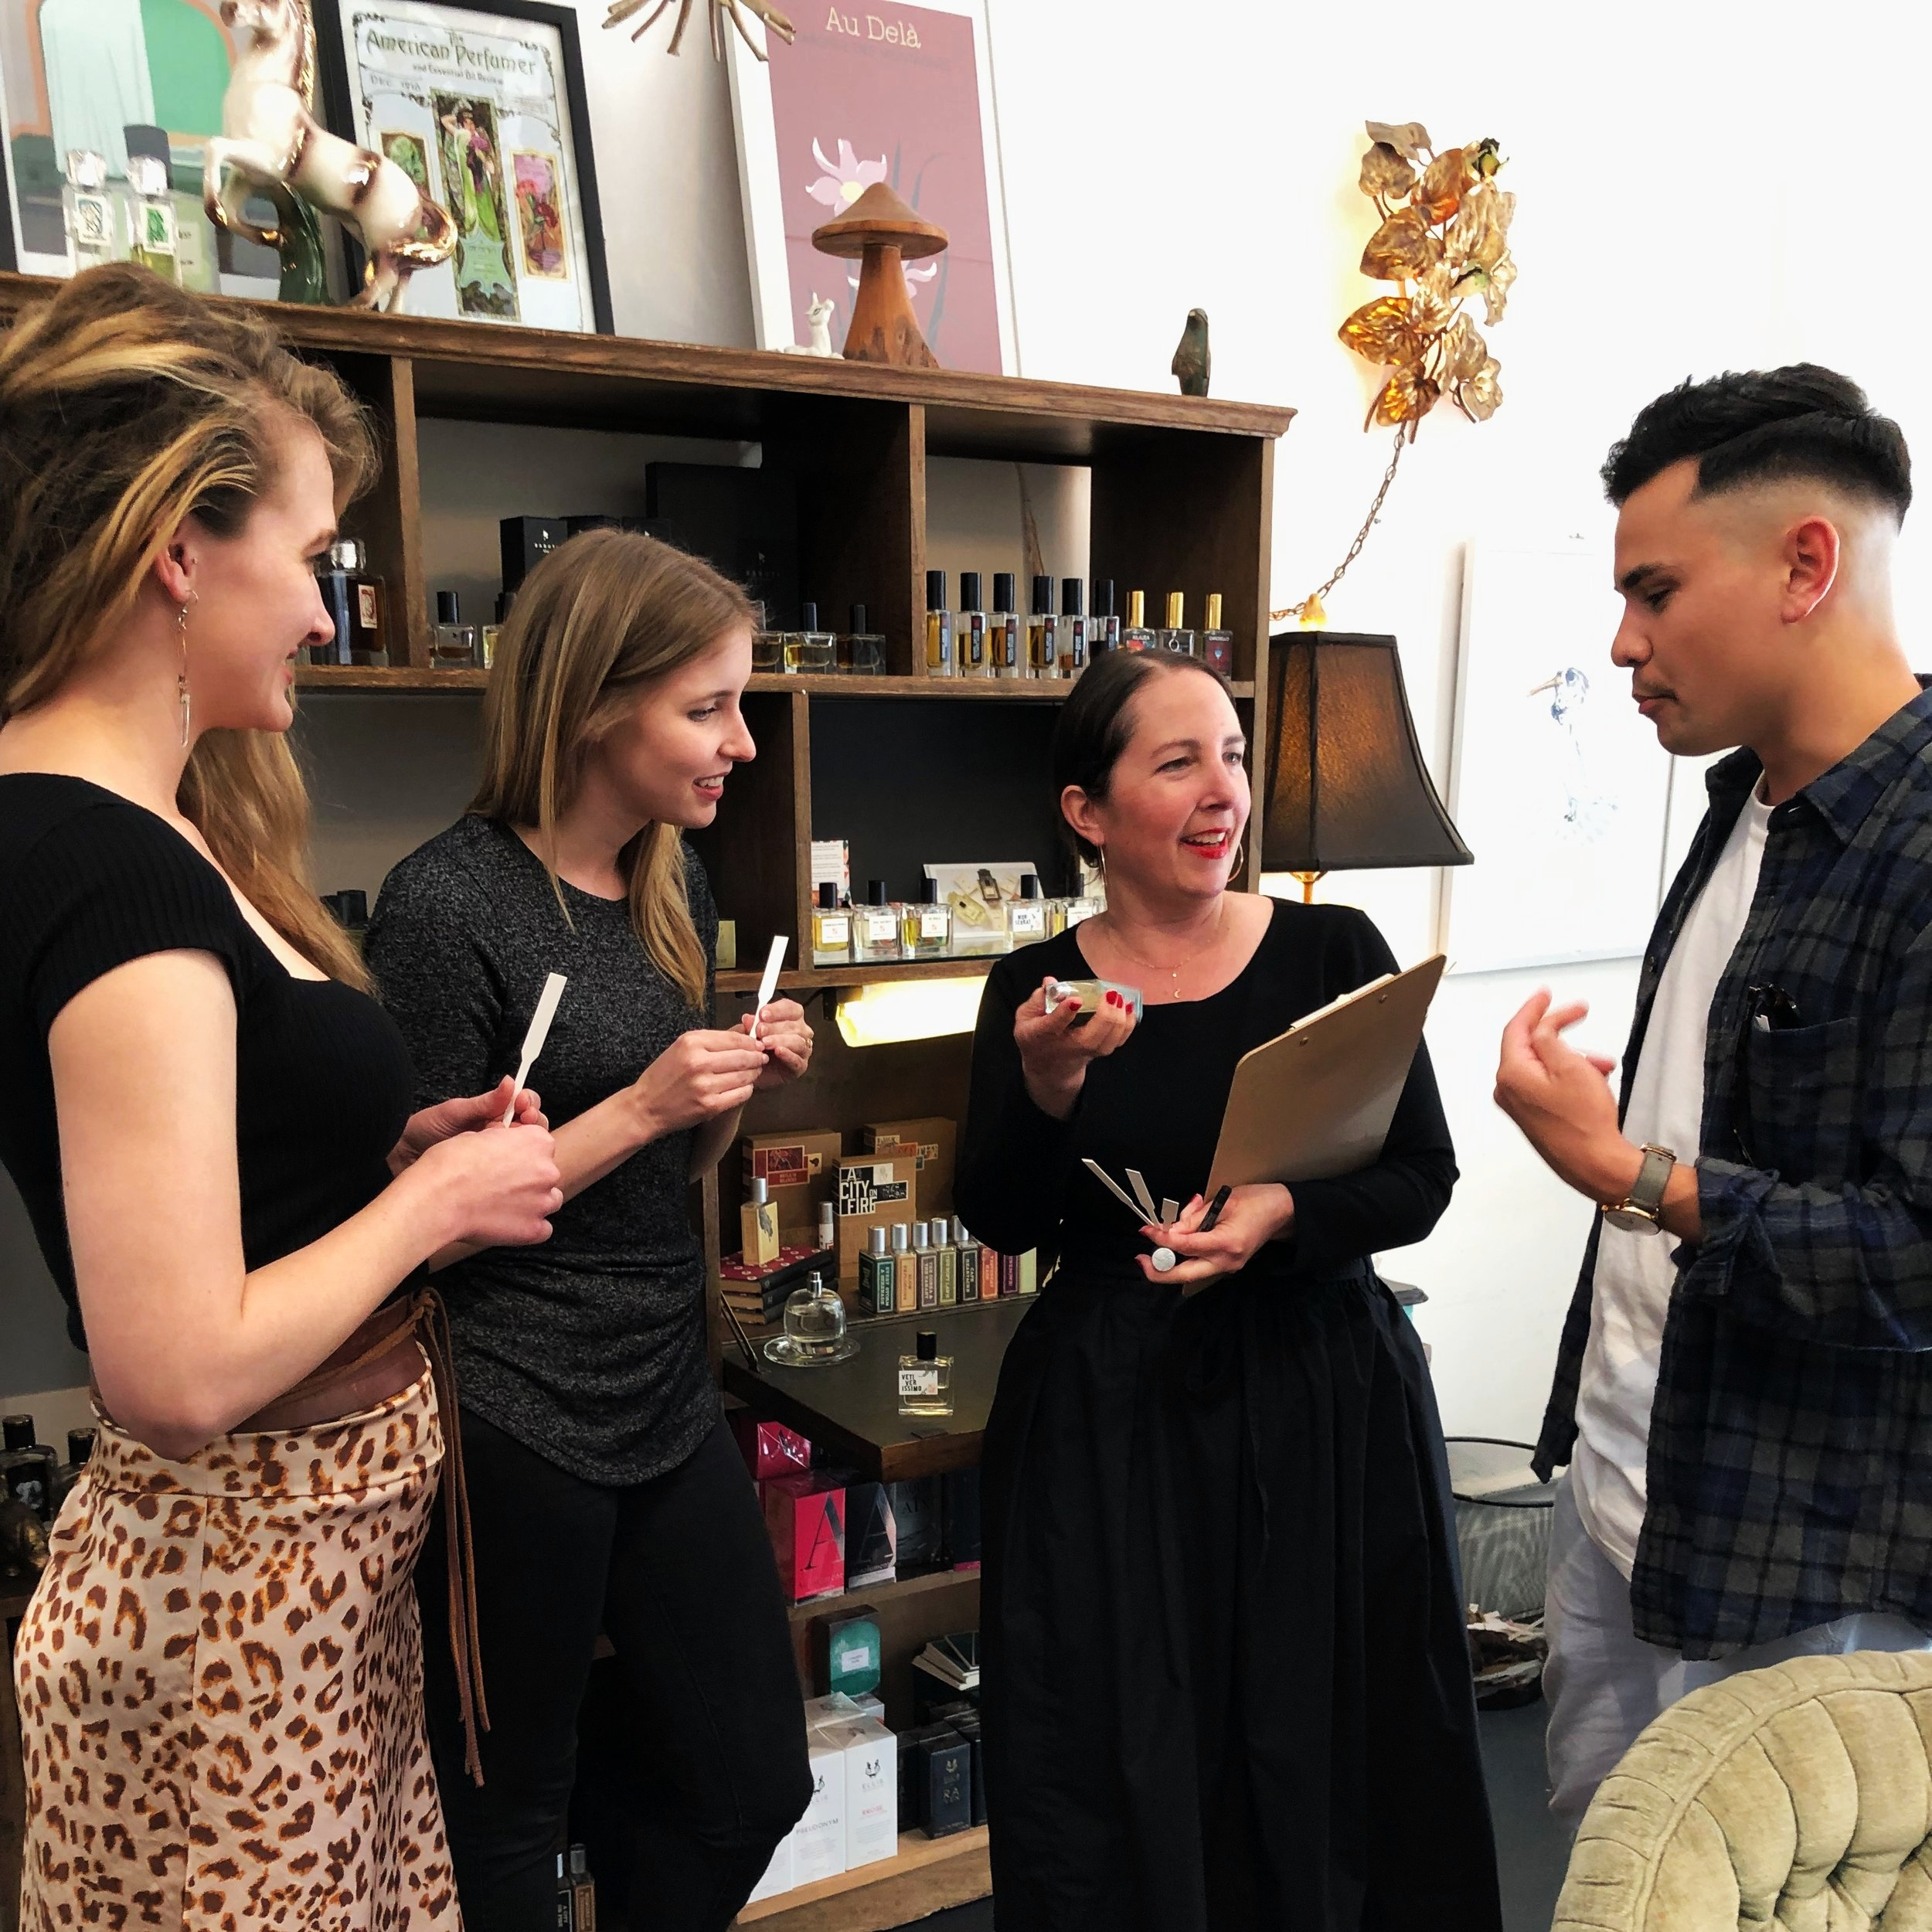 Evaluation & Testing - Our office is co-located with our fragrance boutique in a San Francisco neighborhood with 42% millennial residents. Onsite, we have an experienced team of scent evaluators as well as expertise in consumer testing using surveys, focus groups and in-store observations.